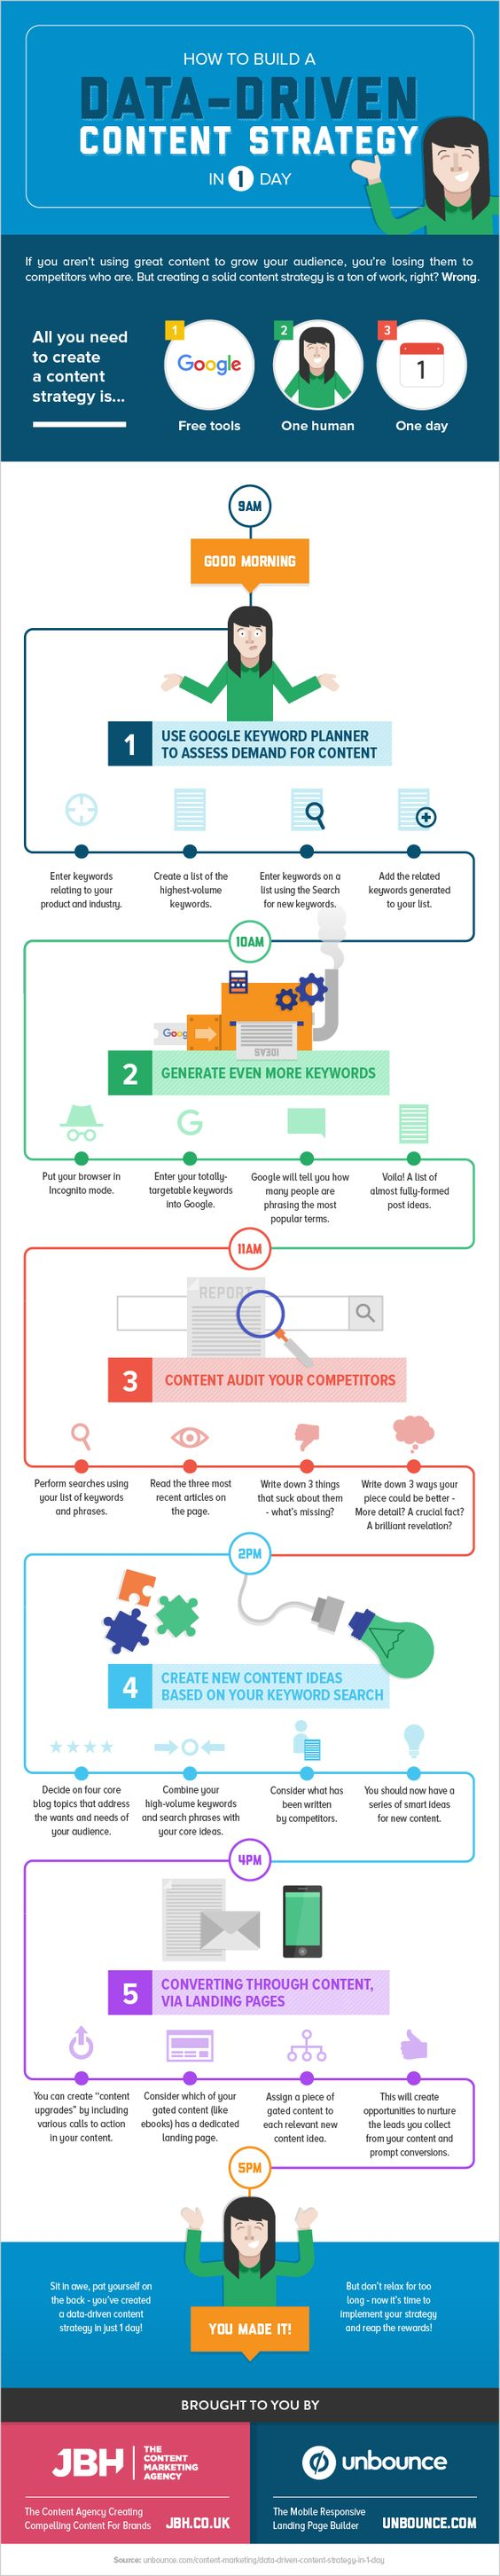 Create a Data-Driven Content Strategy in 1 Day [INFOGRAPHIC]